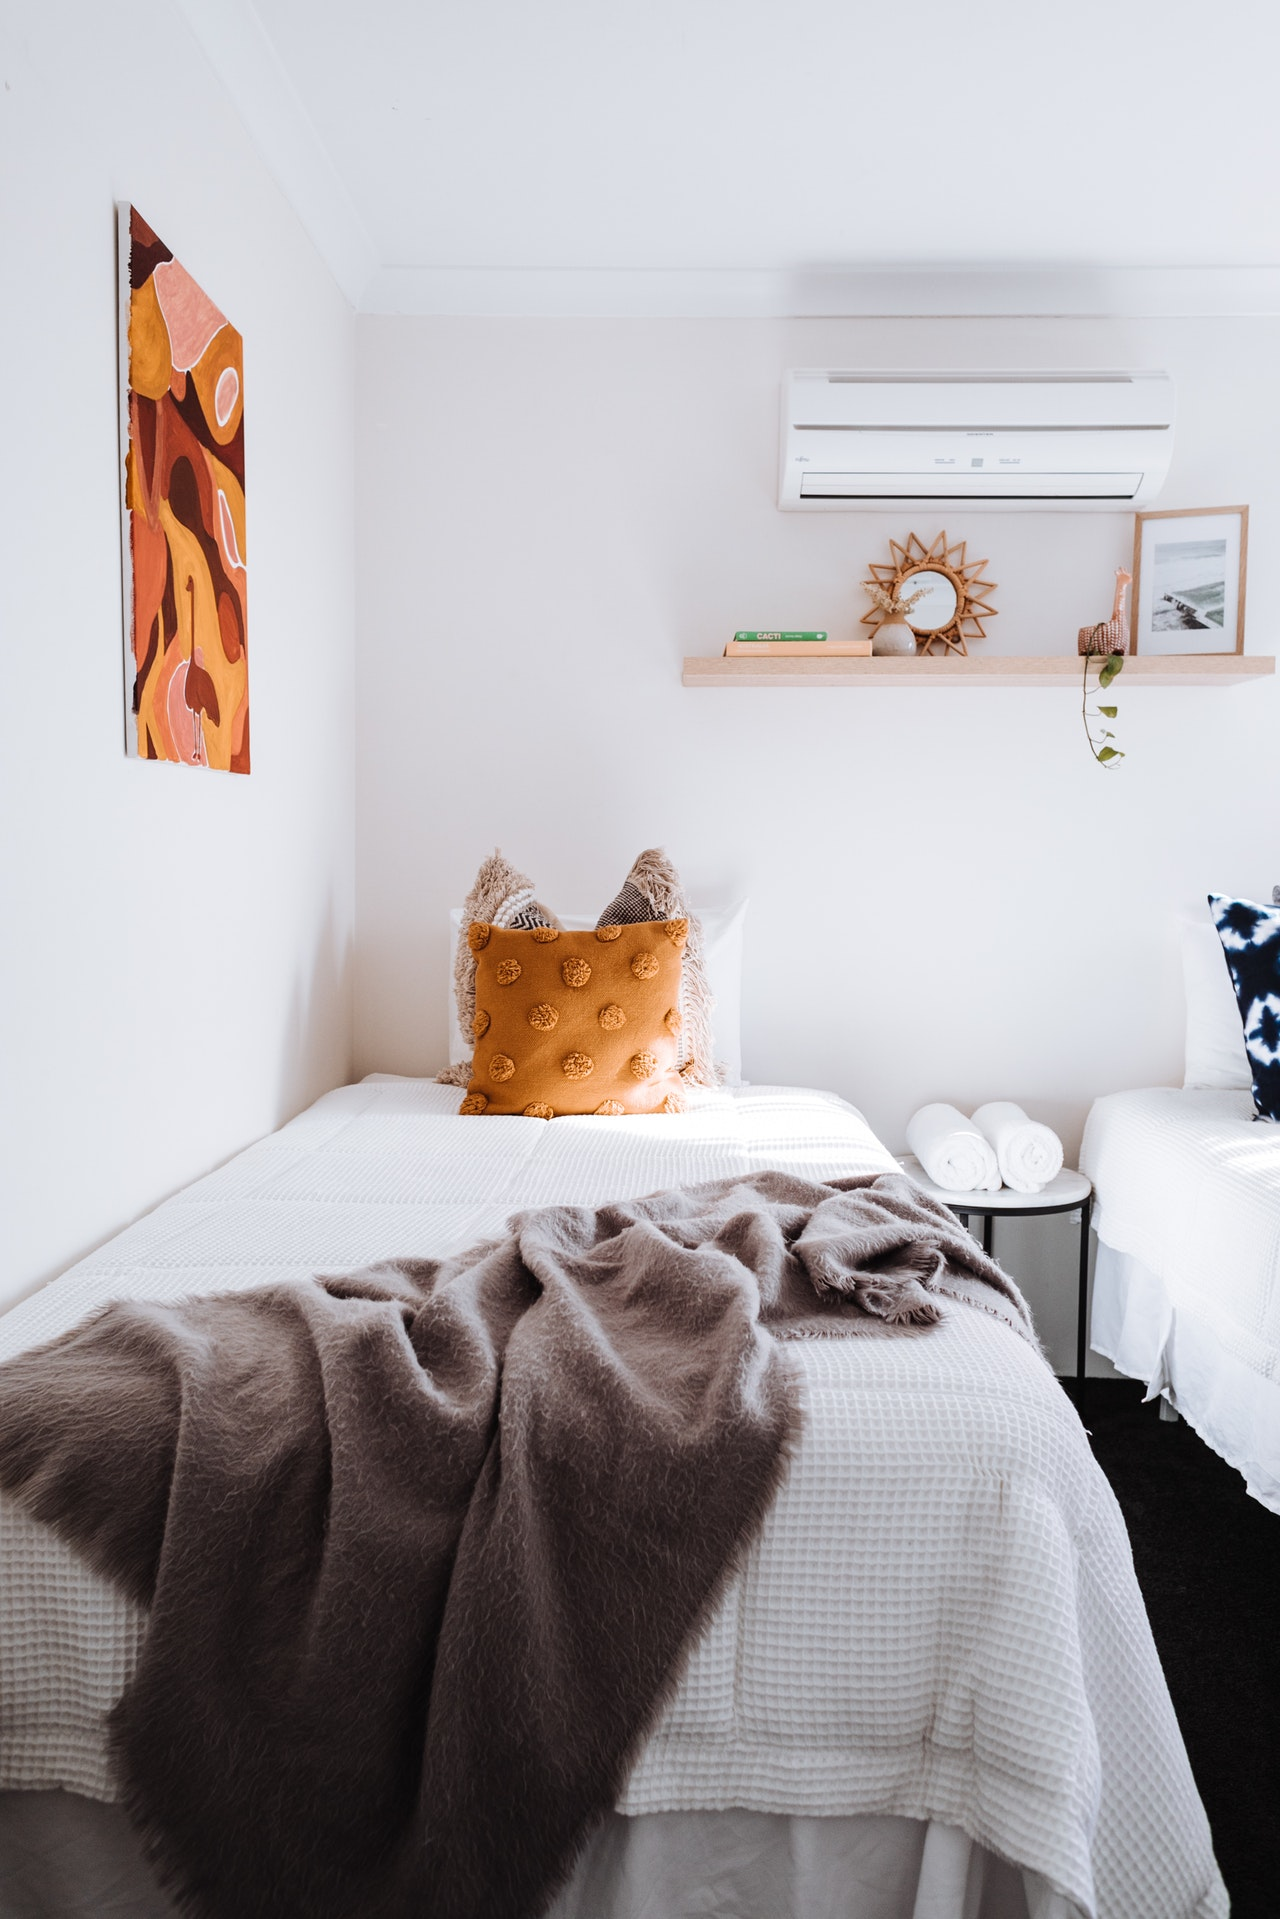 How to pick an air conditioner which is suitable for your room